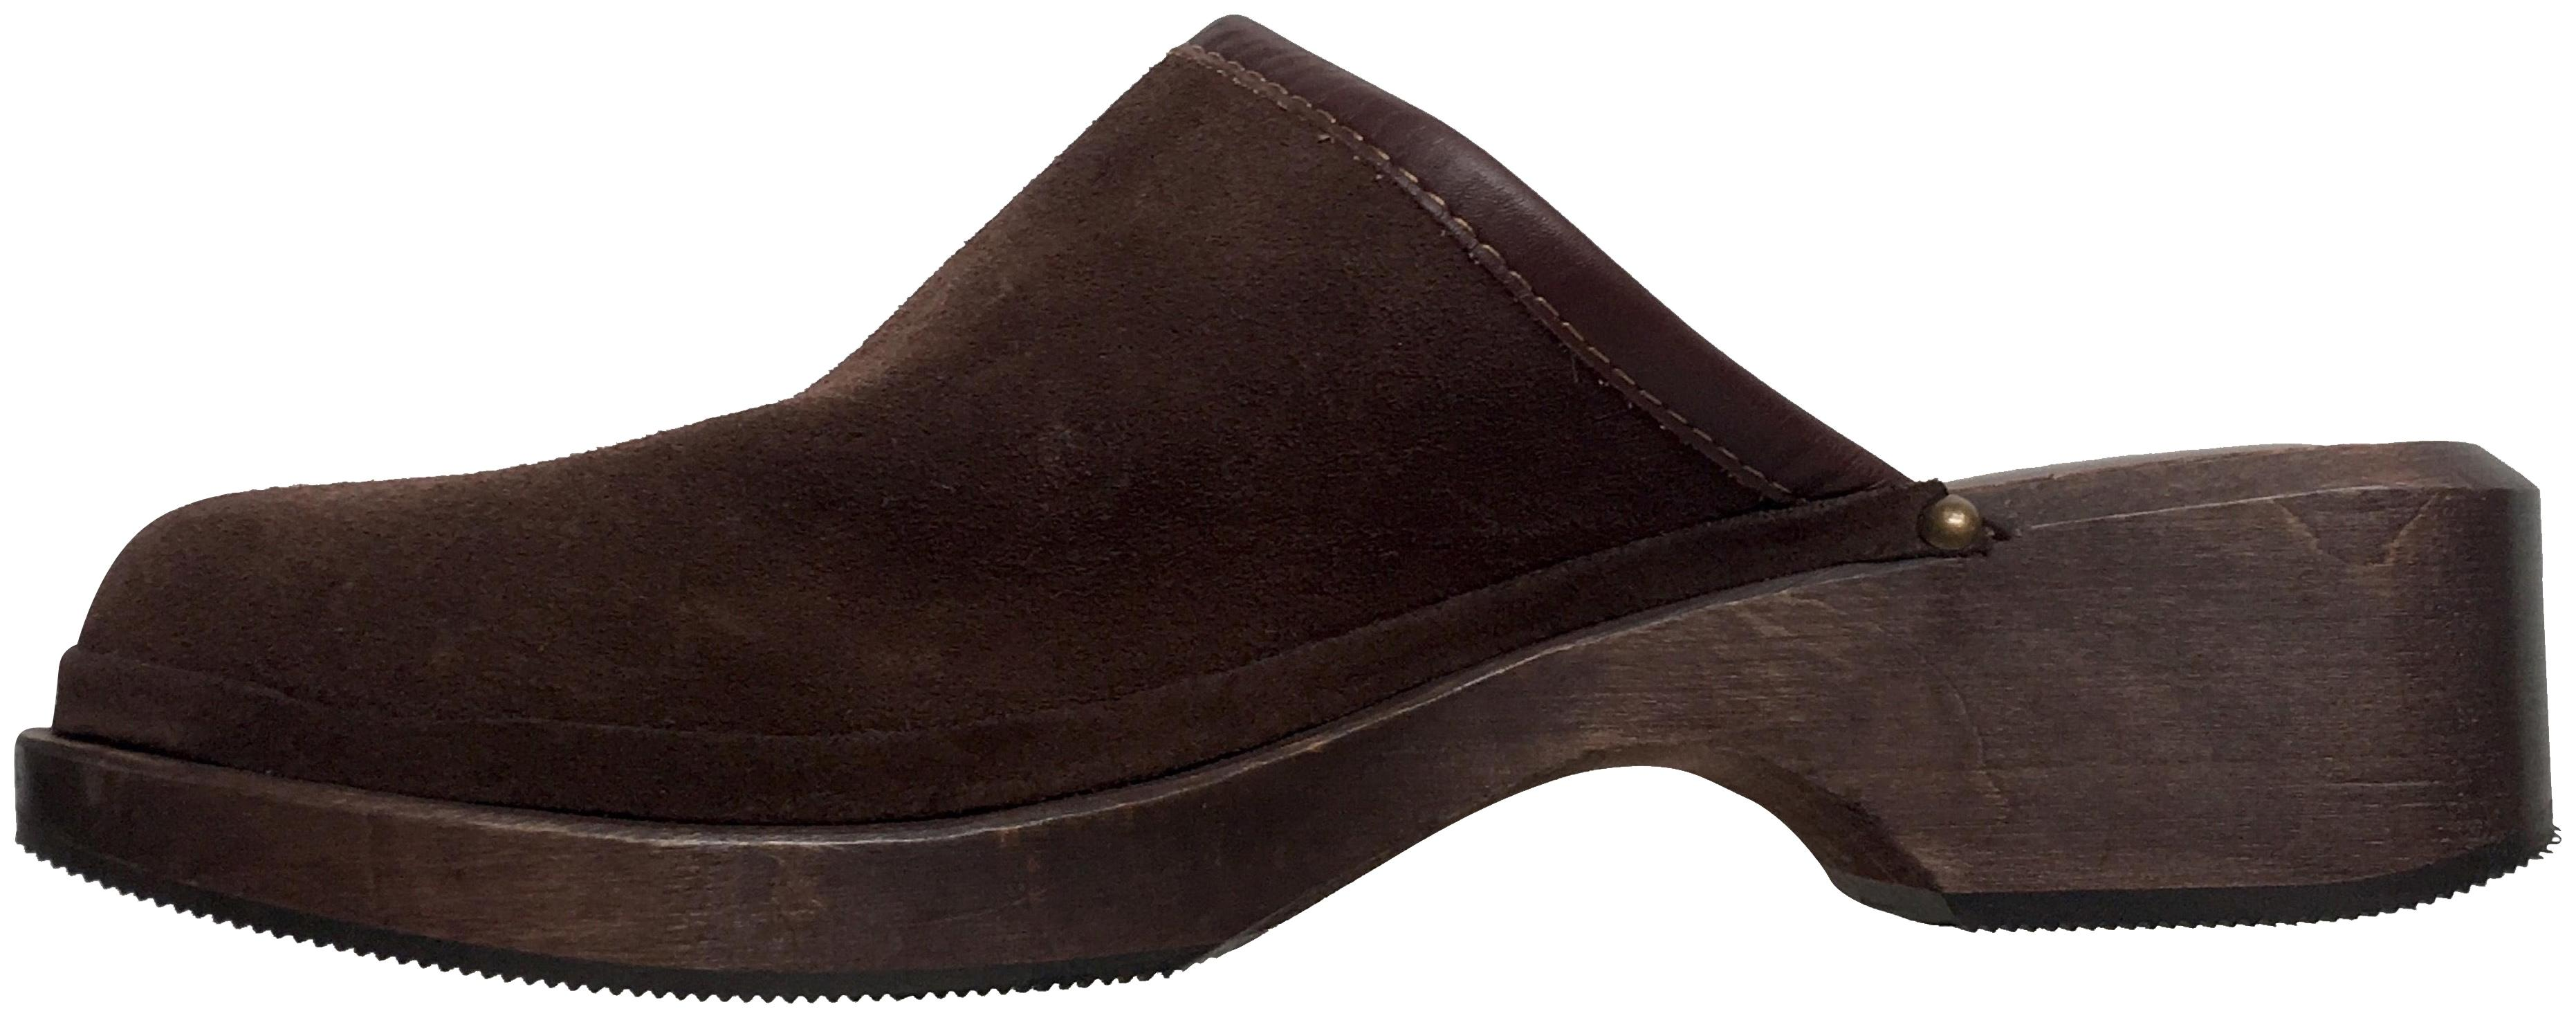 J.Crew Brown Vintage Clogs Boots/Booties Size US 8 Regular (M, B)